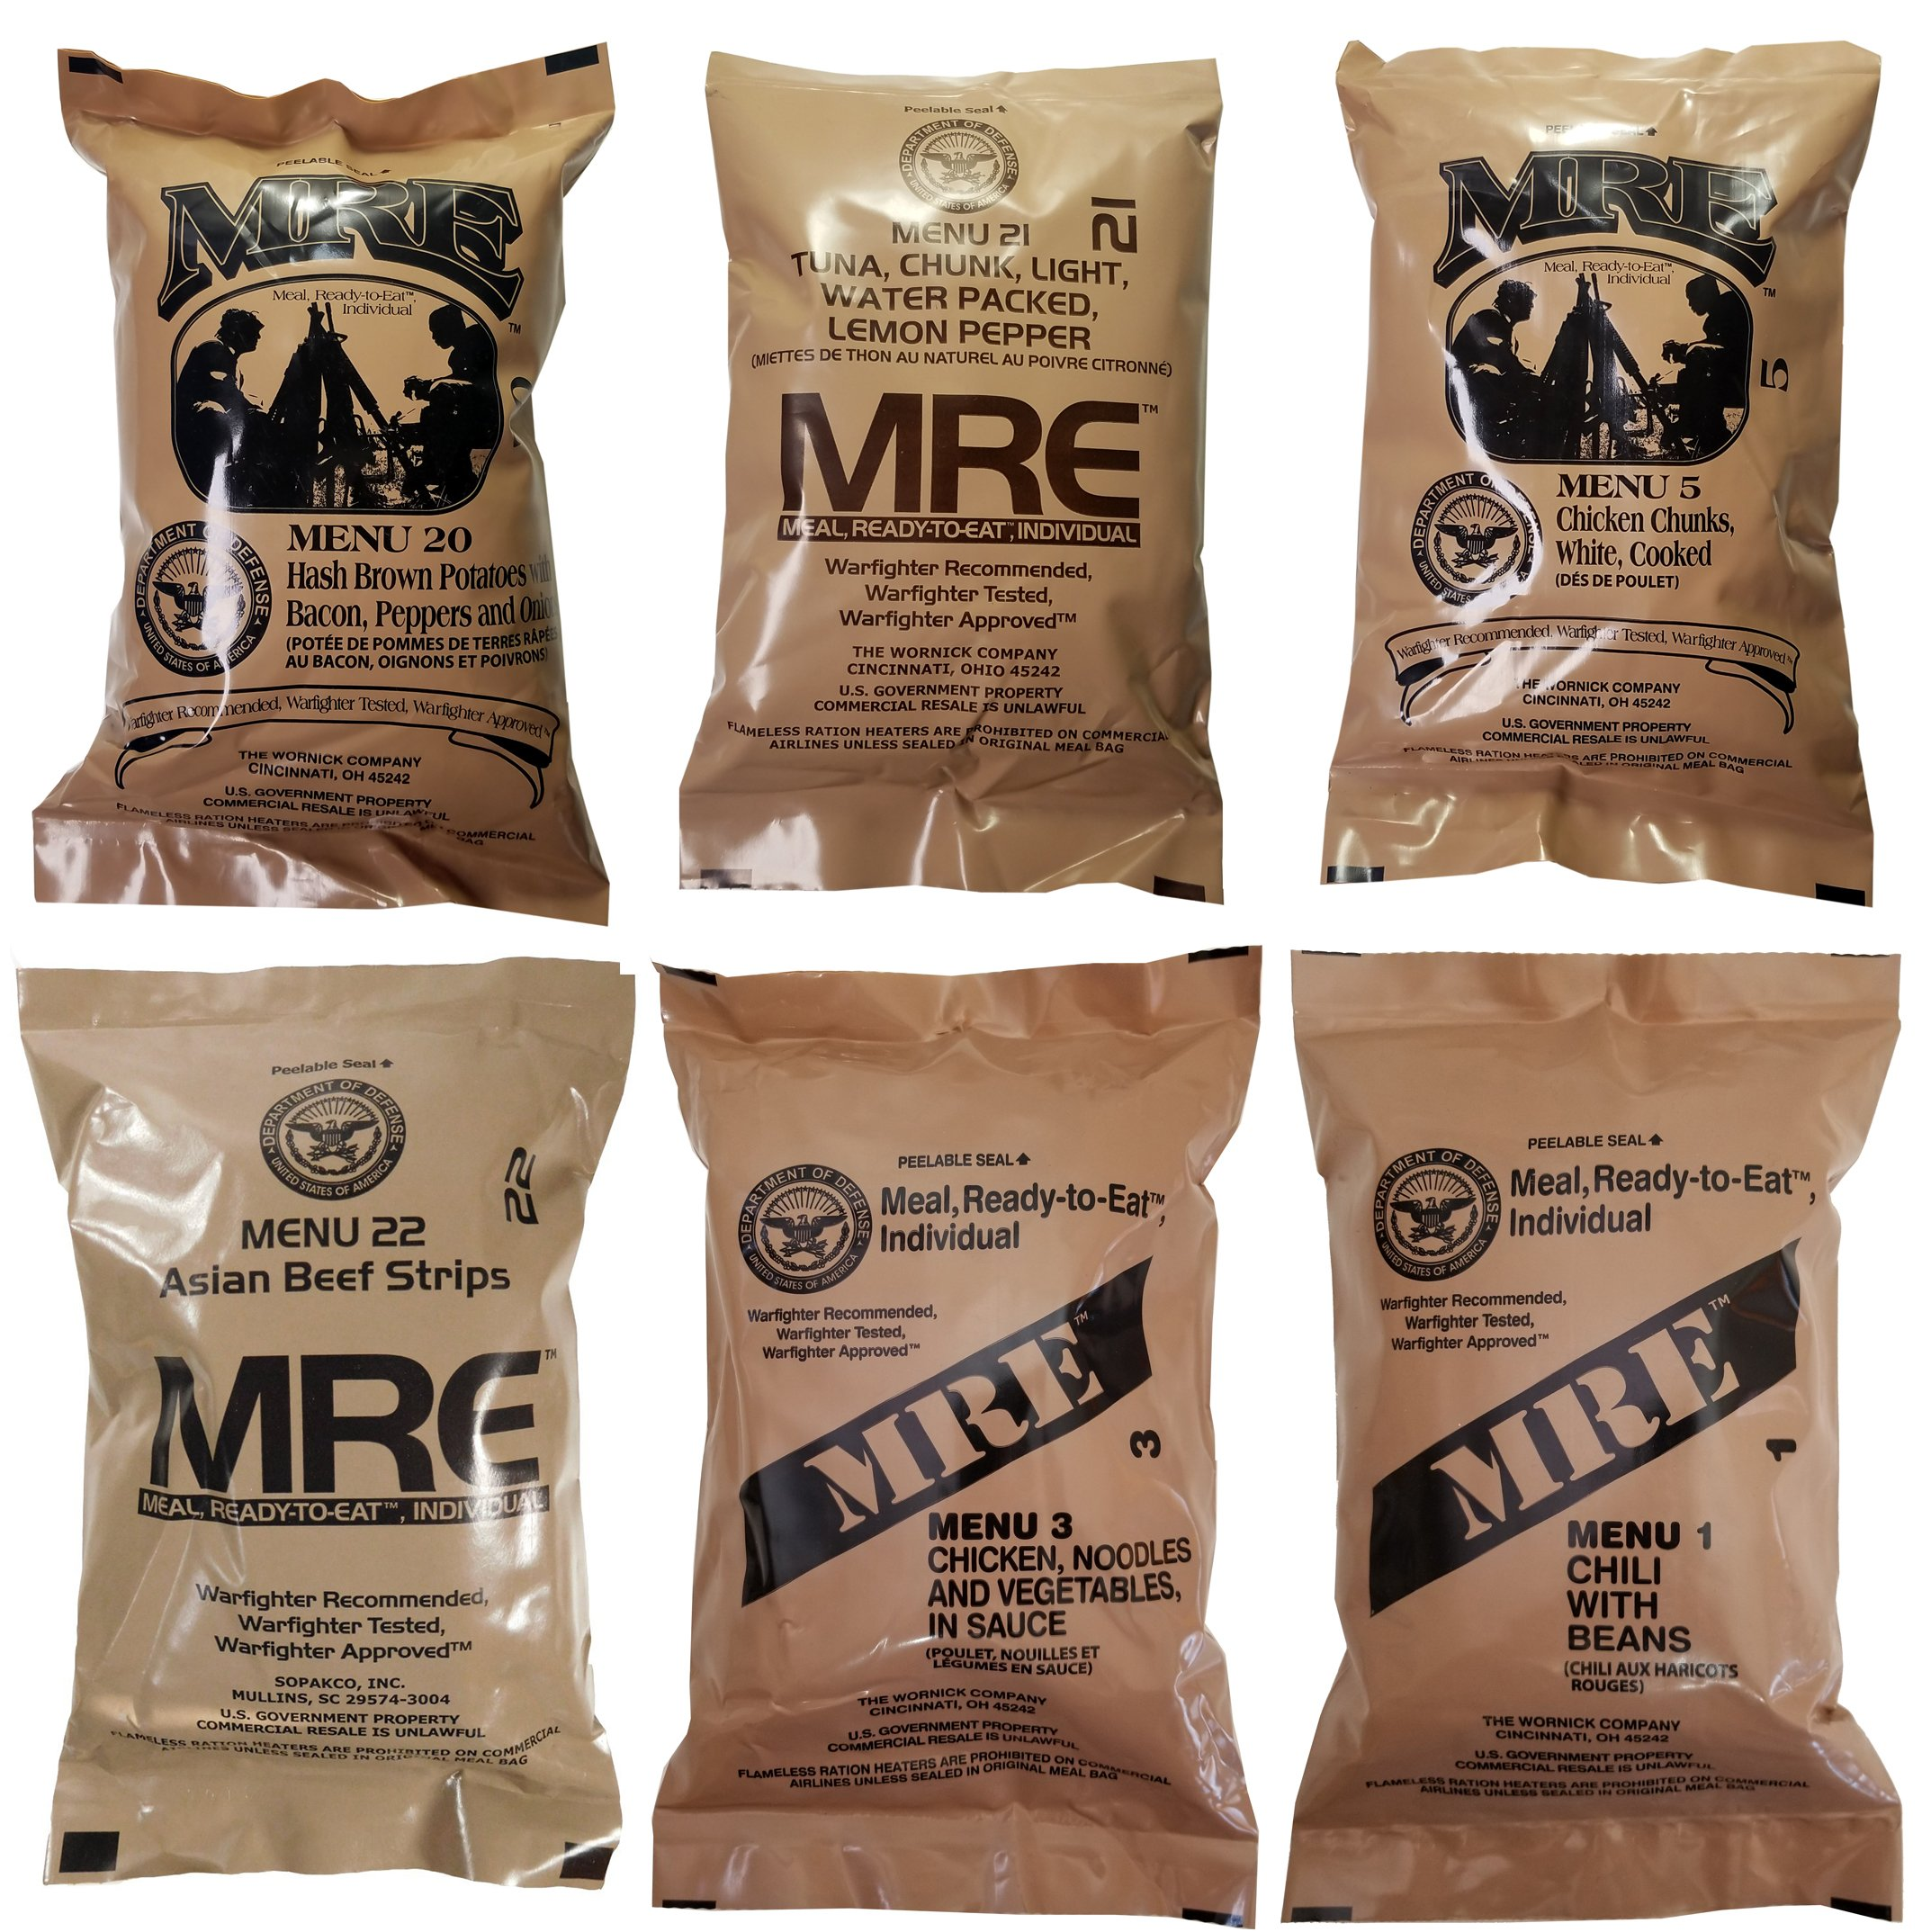 ULTIMATE MRE, Pack Date Printed on Every Meal - Meal-Ready-To-Eat. Inspected Certified by Western Frontier. Genuine Mil Surplus. (6-Pack) by Western Frontier